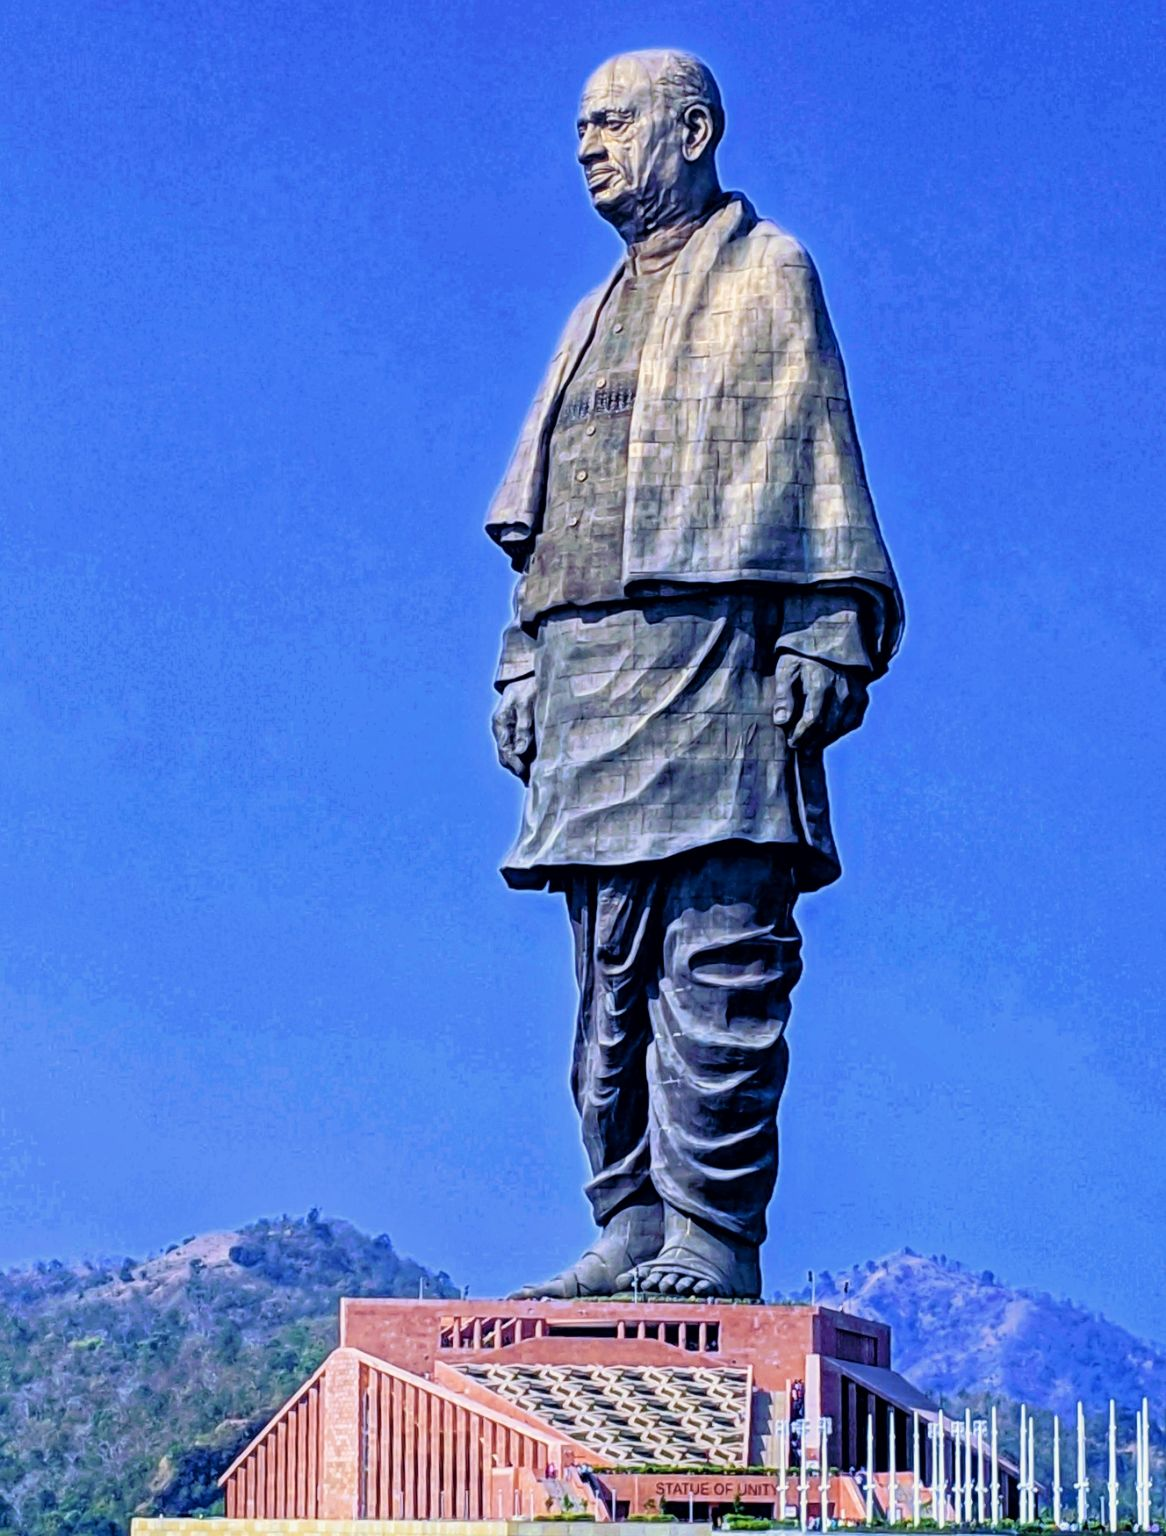 Photo of Statue of Unity By Mayank Goyal